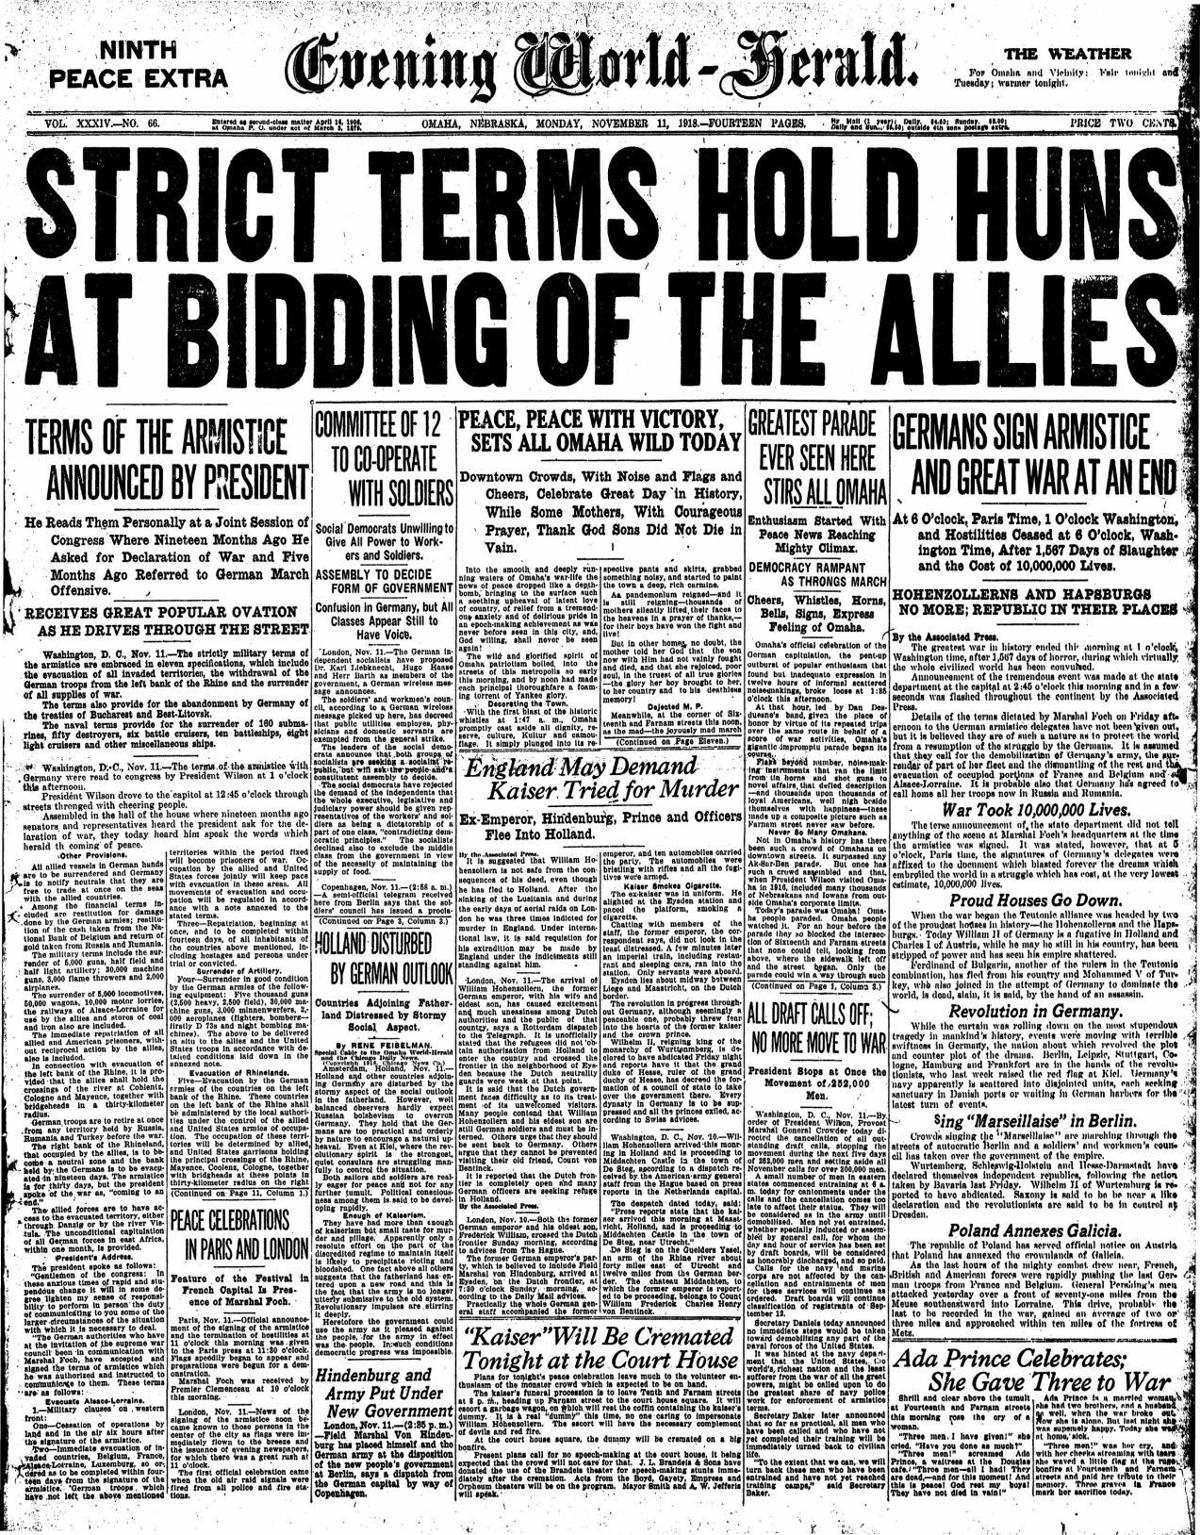 Evening World Herald Nov. 11, 1918 -- Front Page